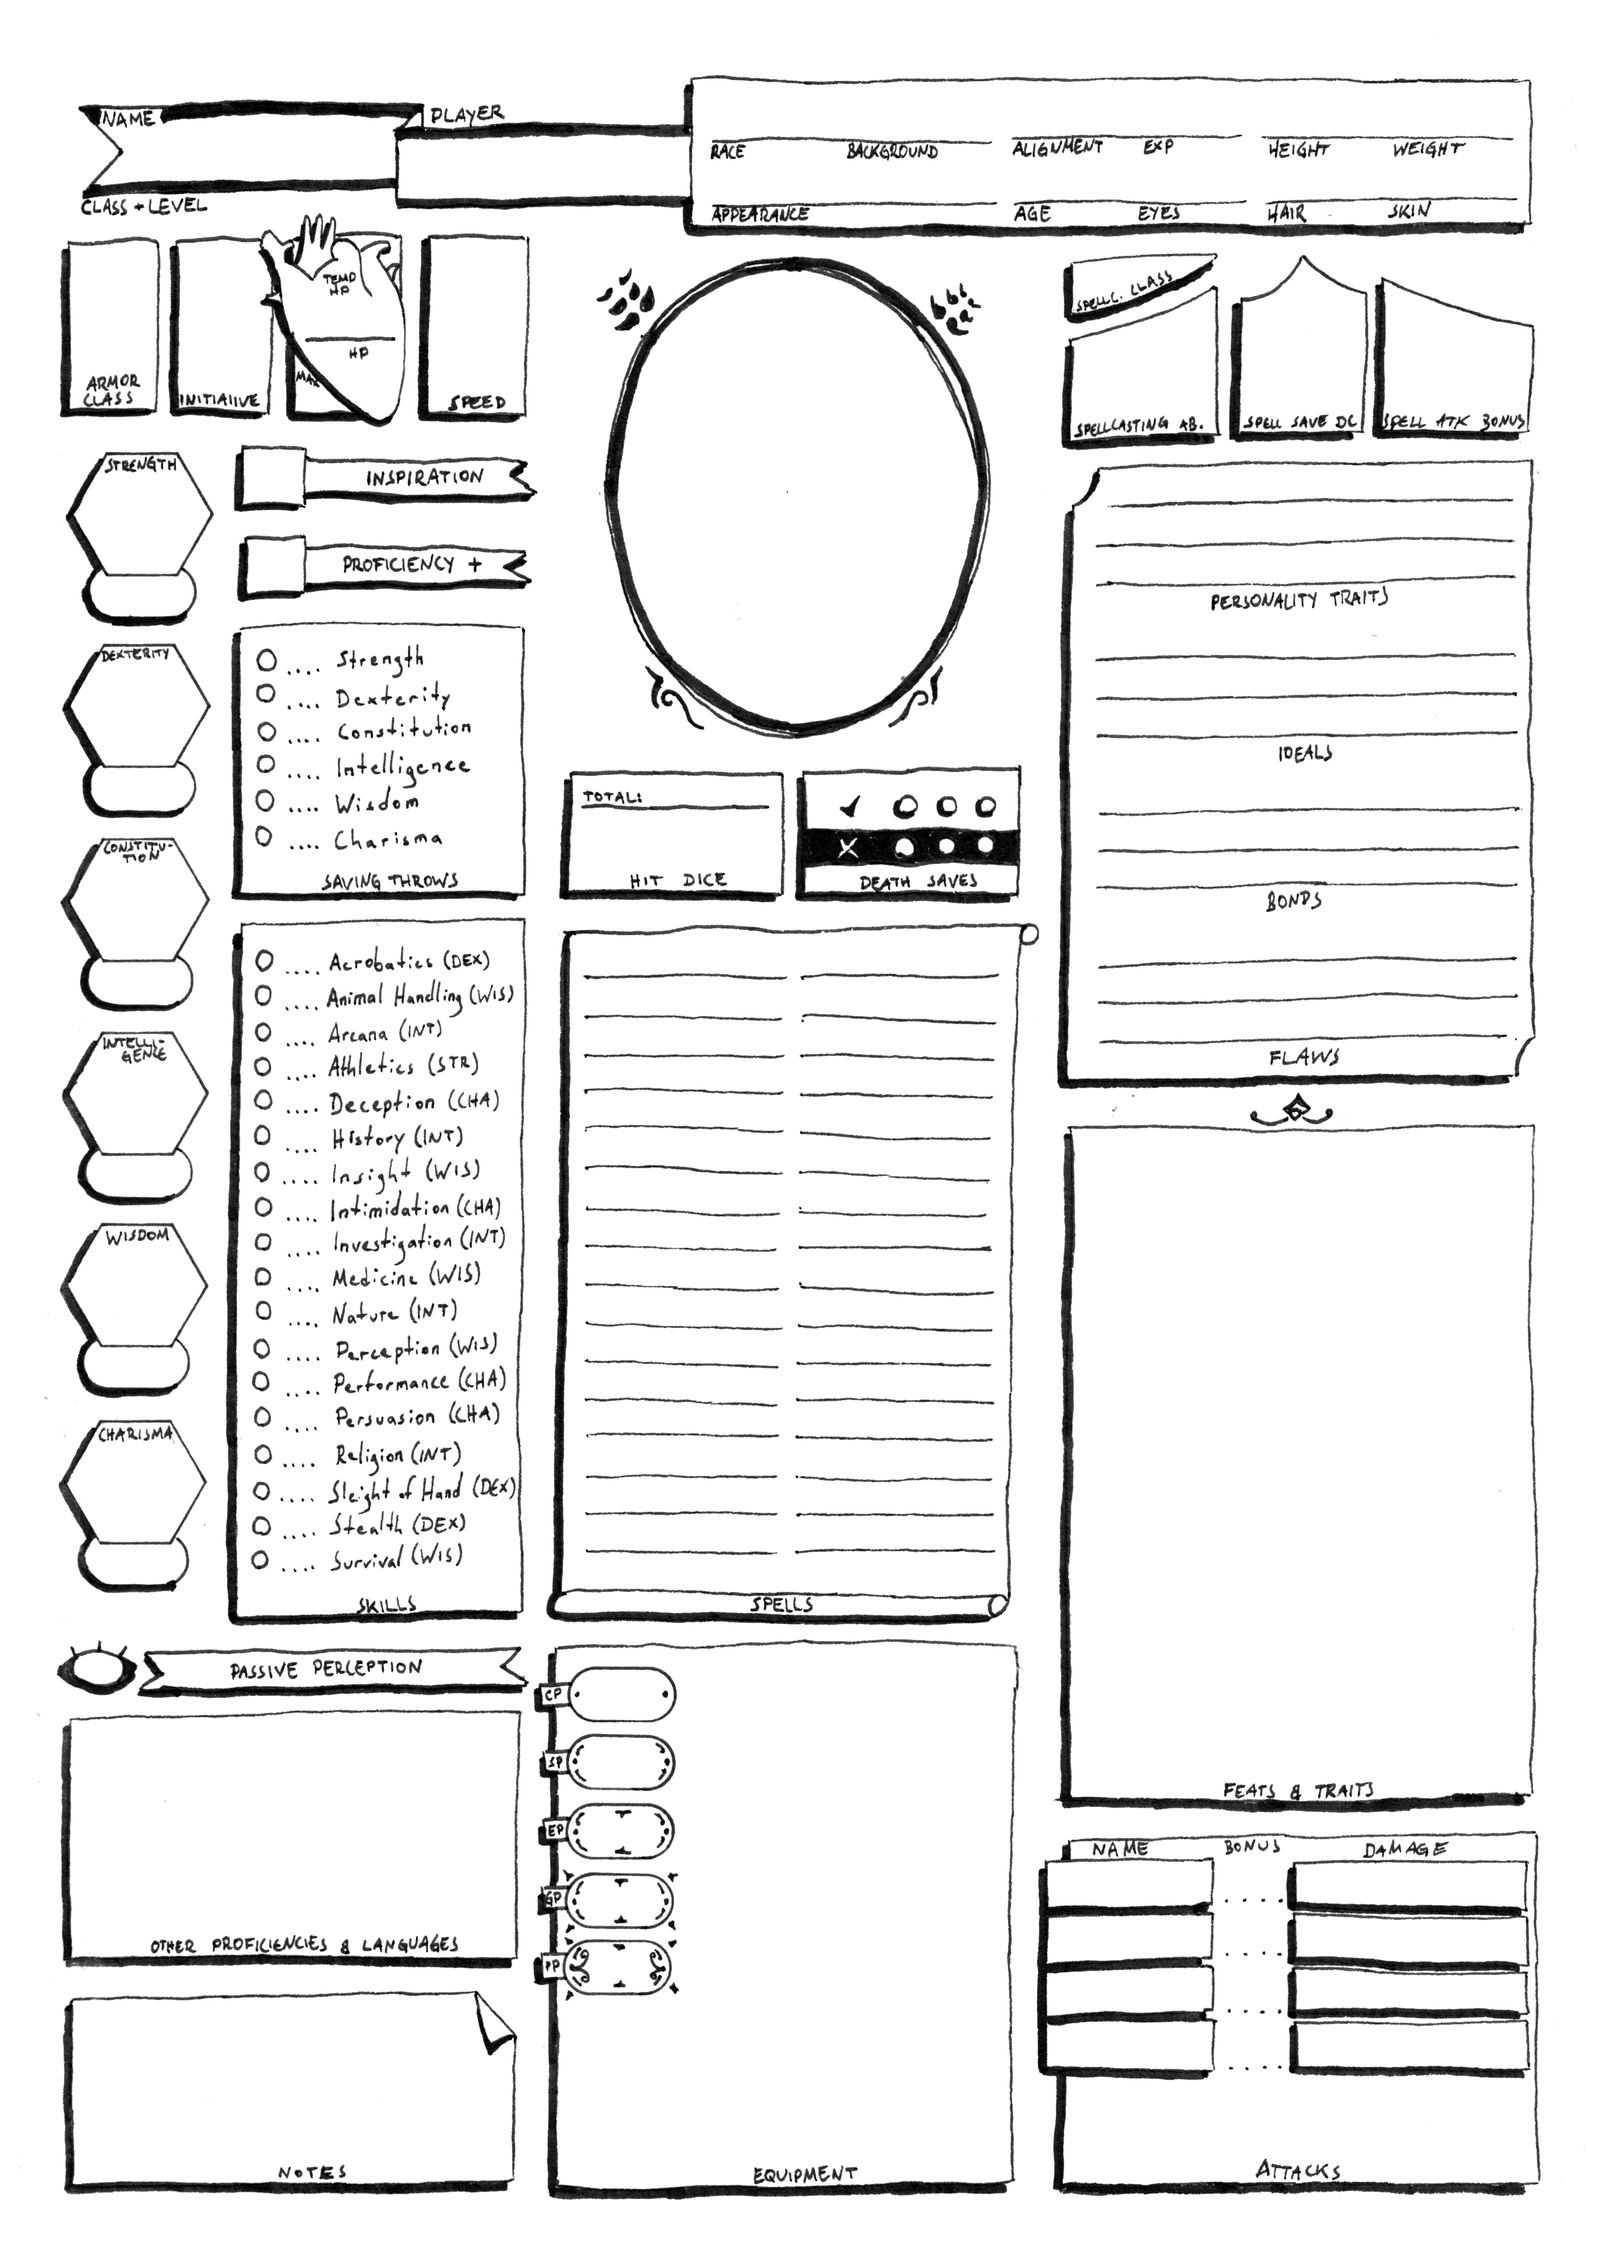 It's just a photo of Agile D&d 5e Character Sheet Printable